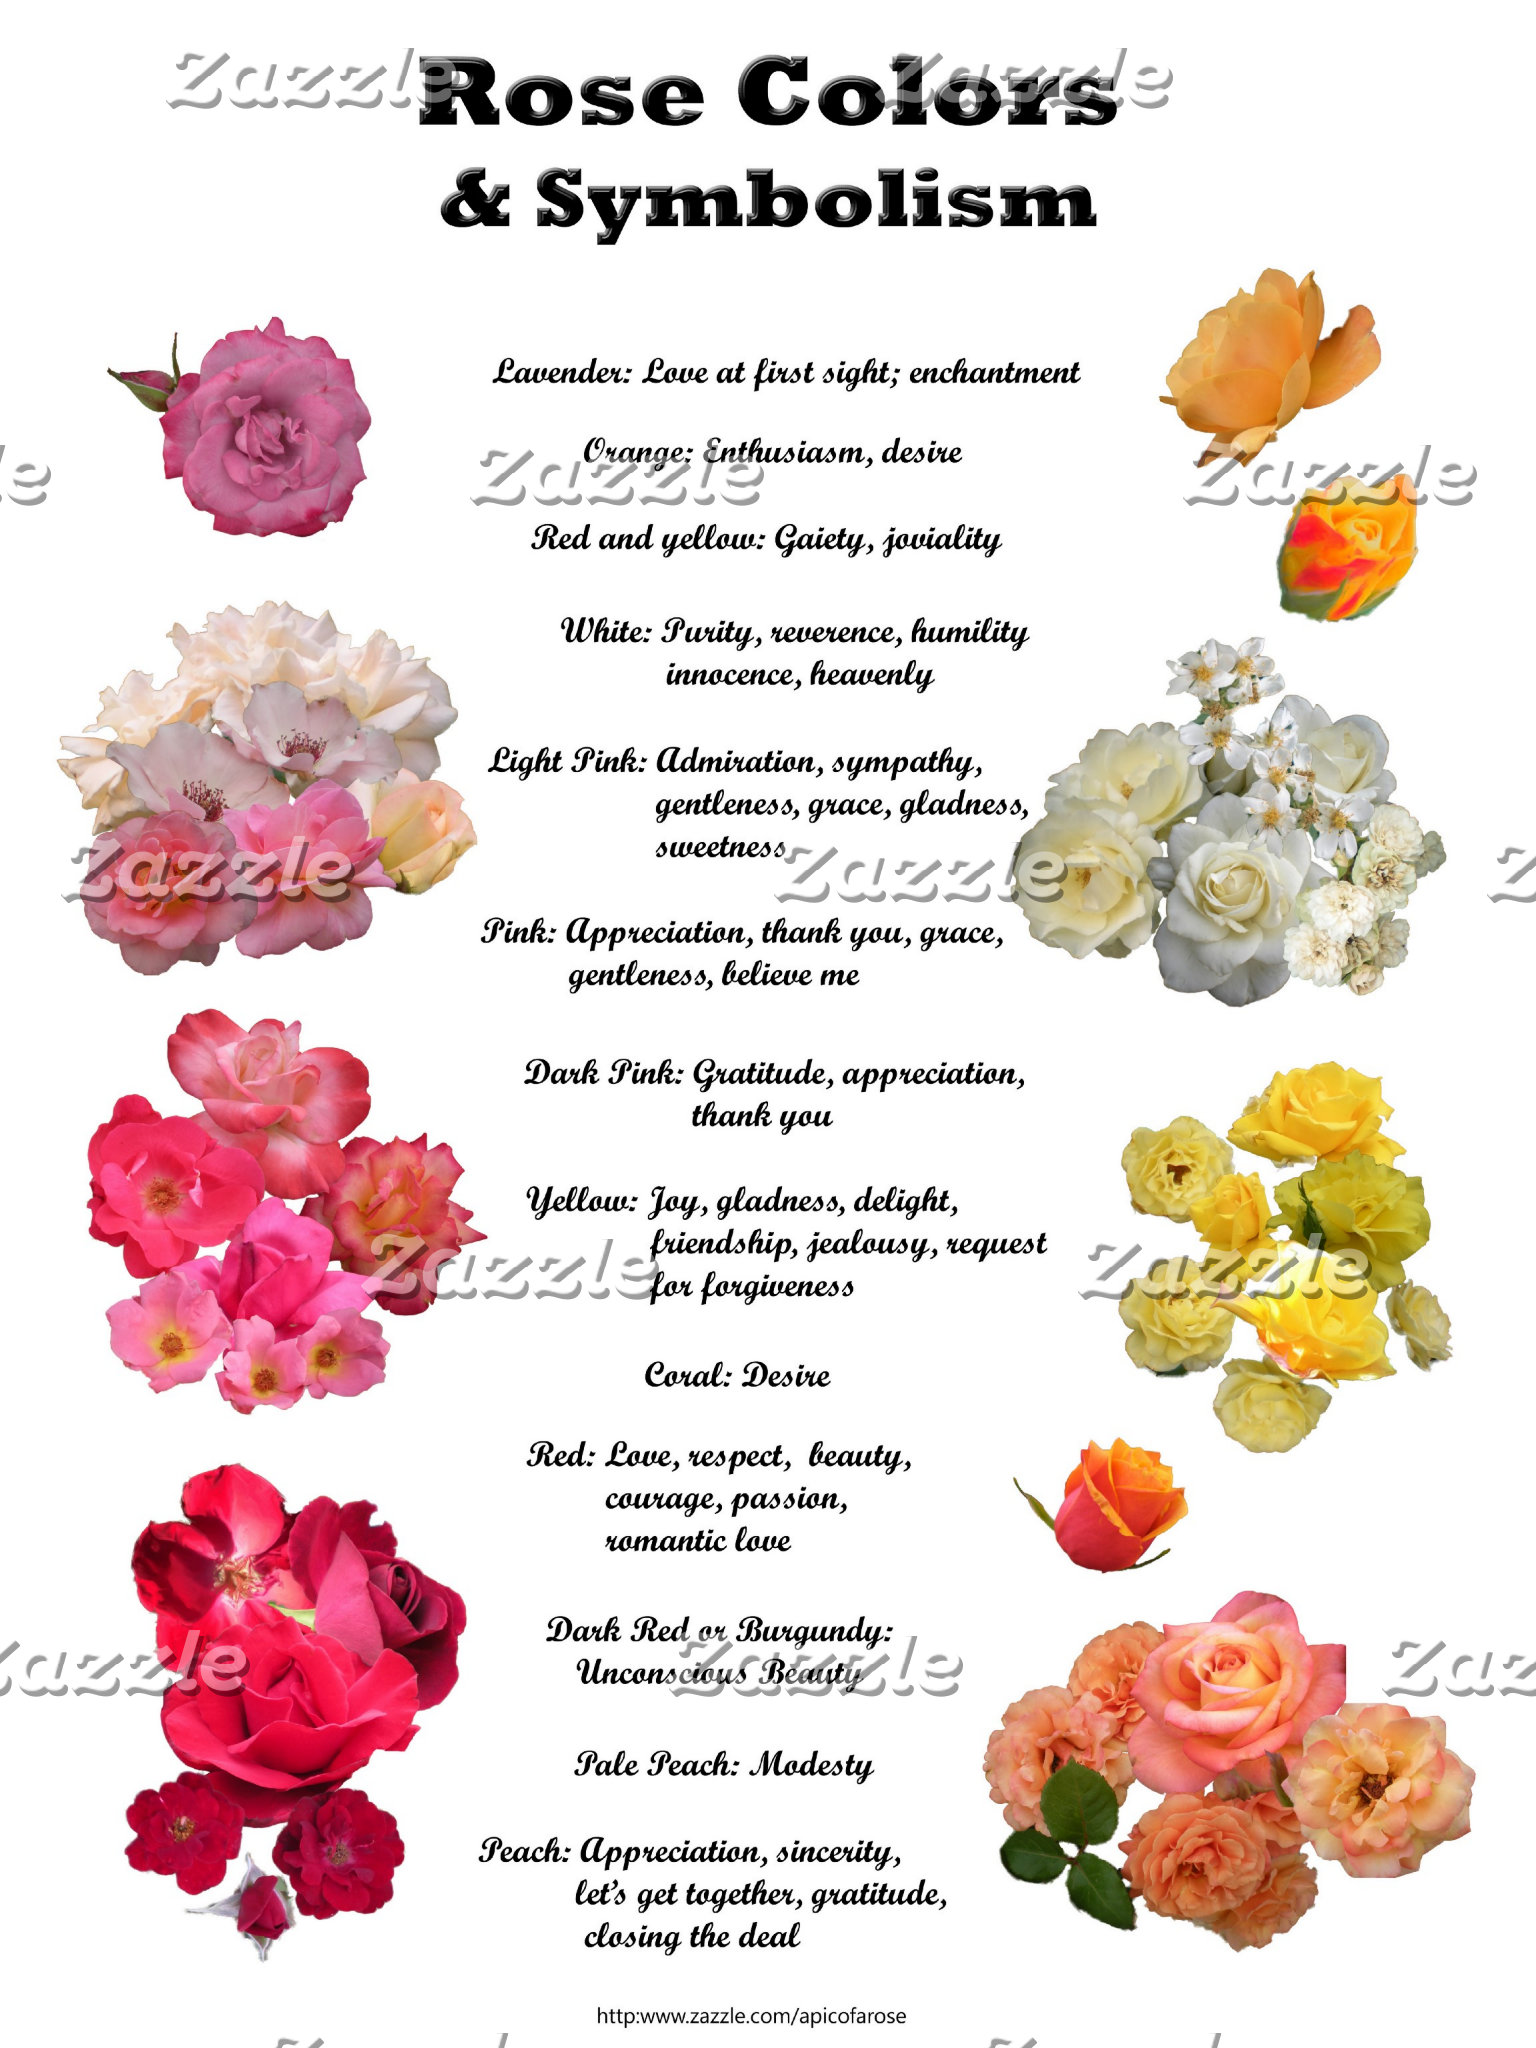 Rose Colors and Symbolism